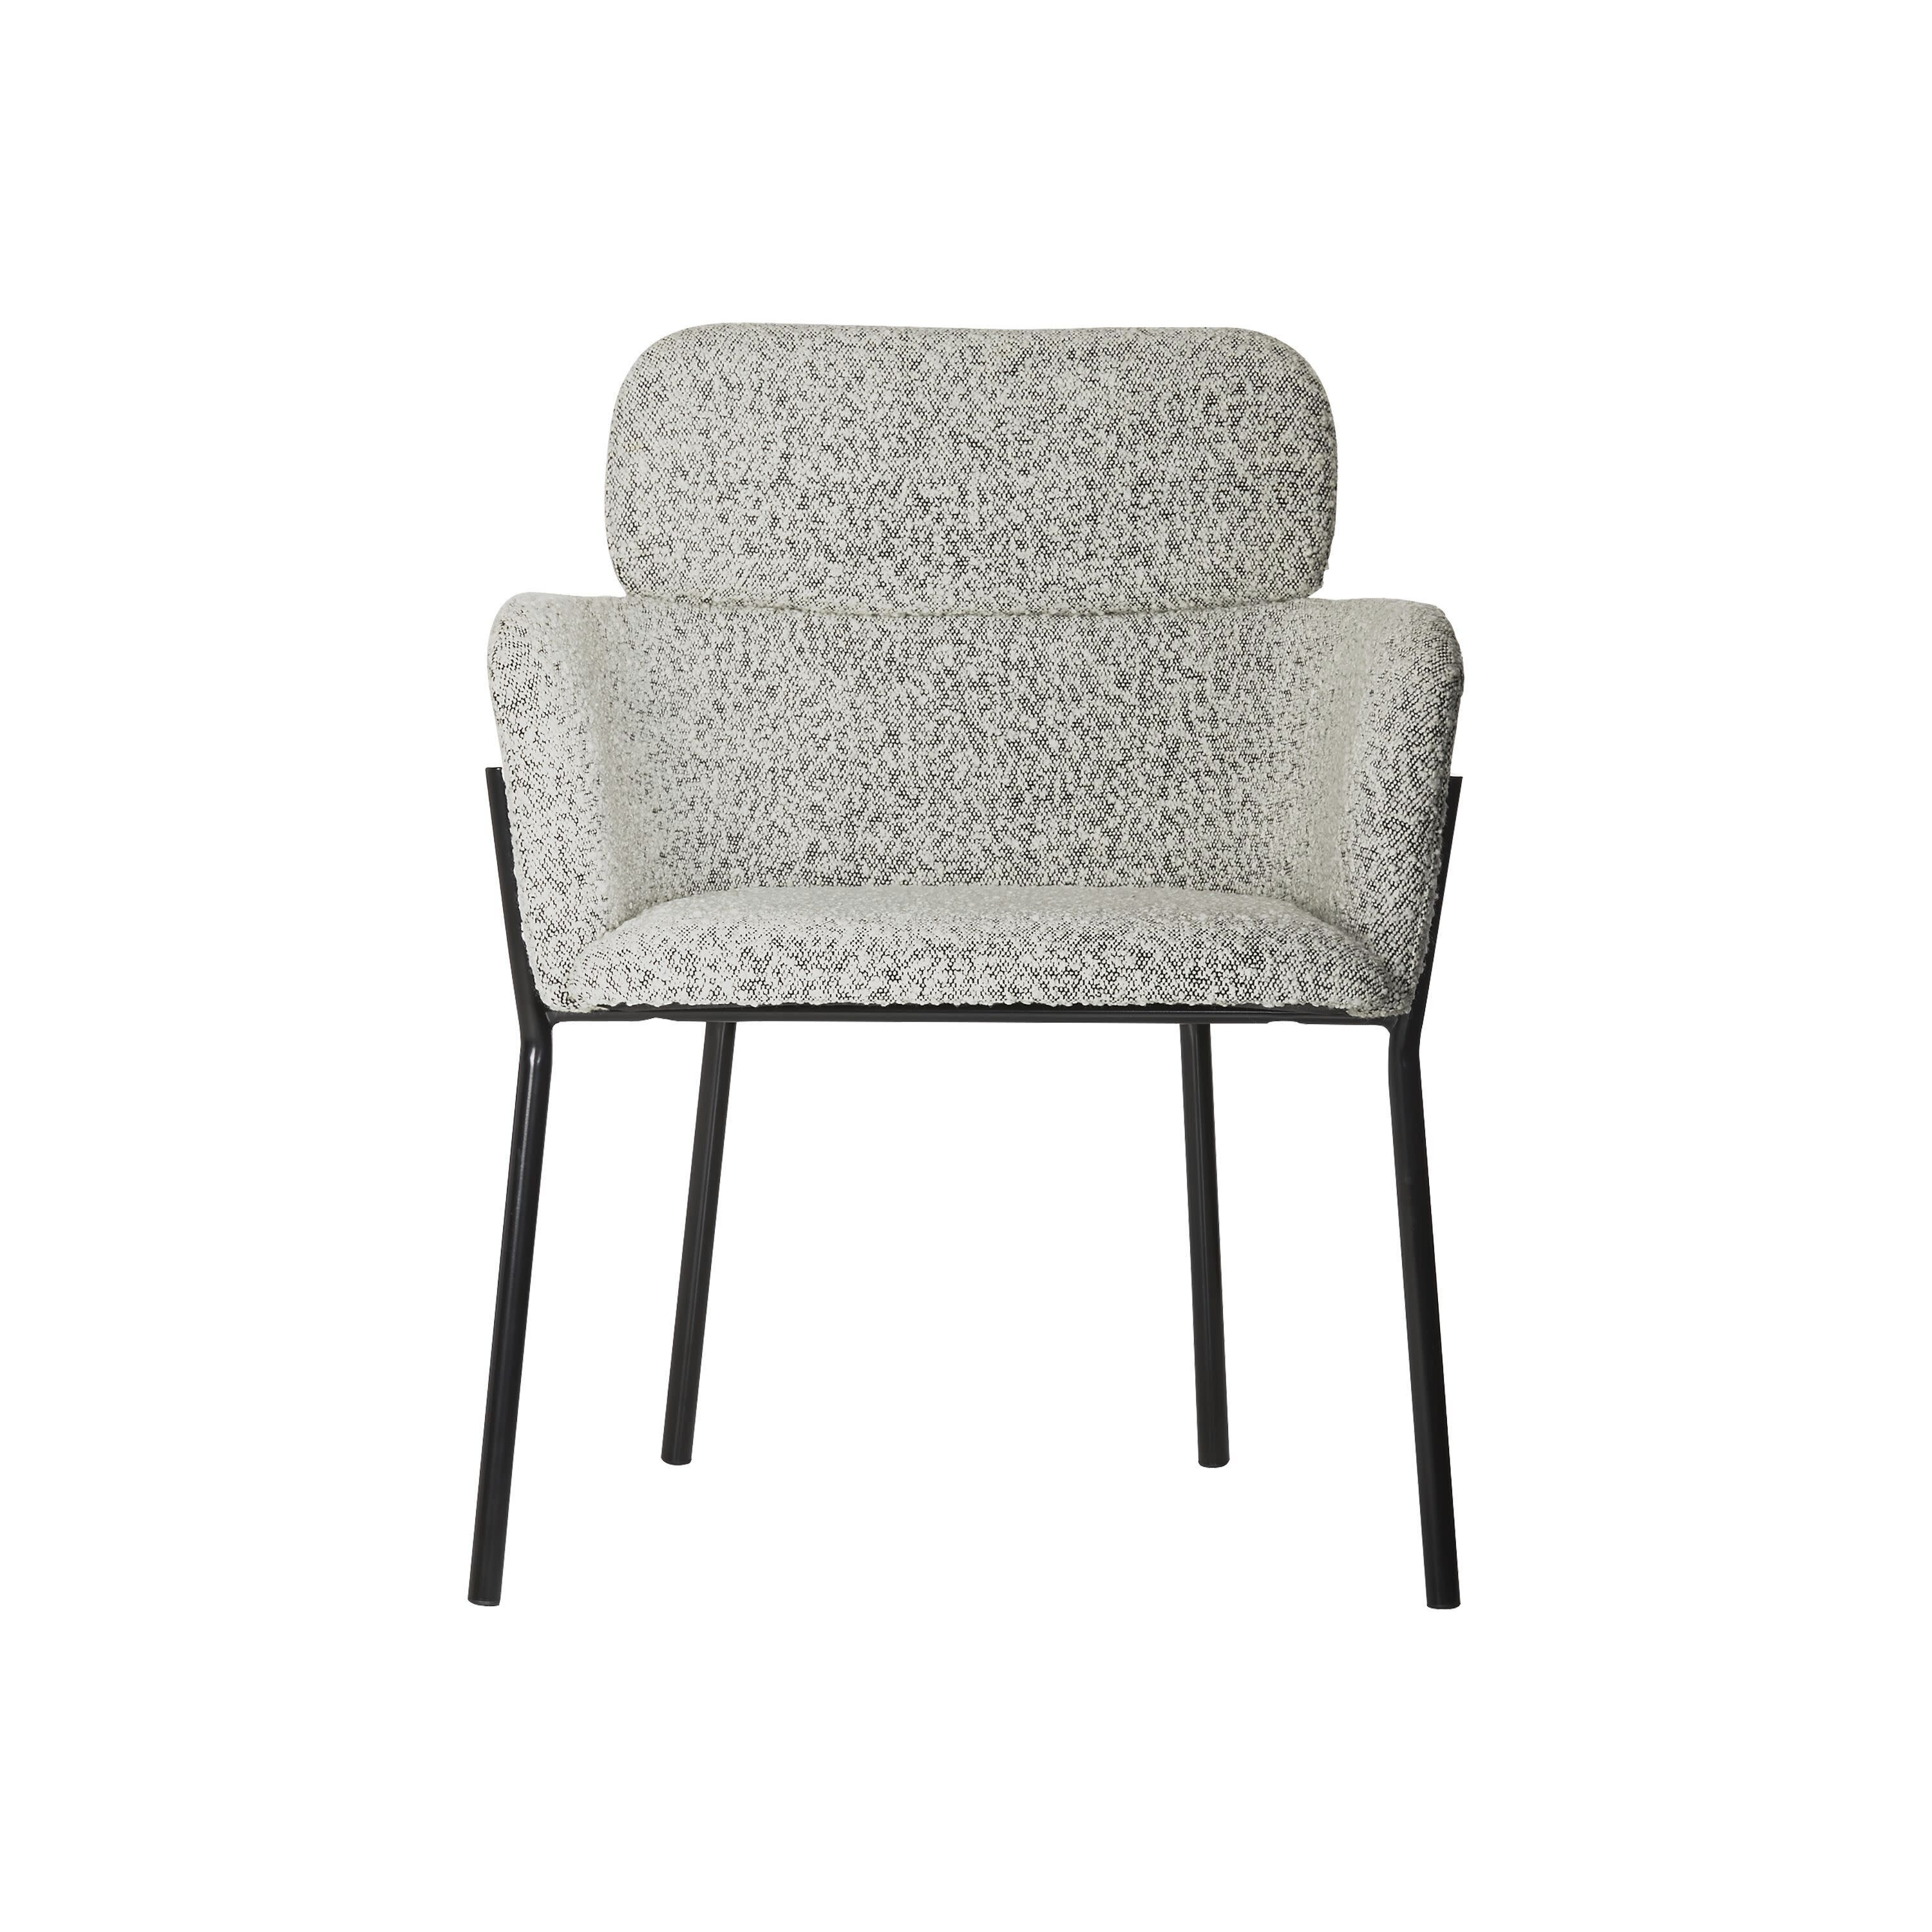 """This undated photo shows CB2's Azalea chair. Designer John McClain, whose studio is in Orlando, says one big trend he's seeing in fall décor is a range of deep, cozy textures like boucle and shearling. """"(They're) are cropping up on more than just pillows these days – entire sofas, chairs and headboards are sporting luscious upholstery reminiscent of lambs, puppies and ponies."""" CB2 has several options, including the Gwyneth side chair, Logan sofa and Azalea chair. (CB2 via AP)"""